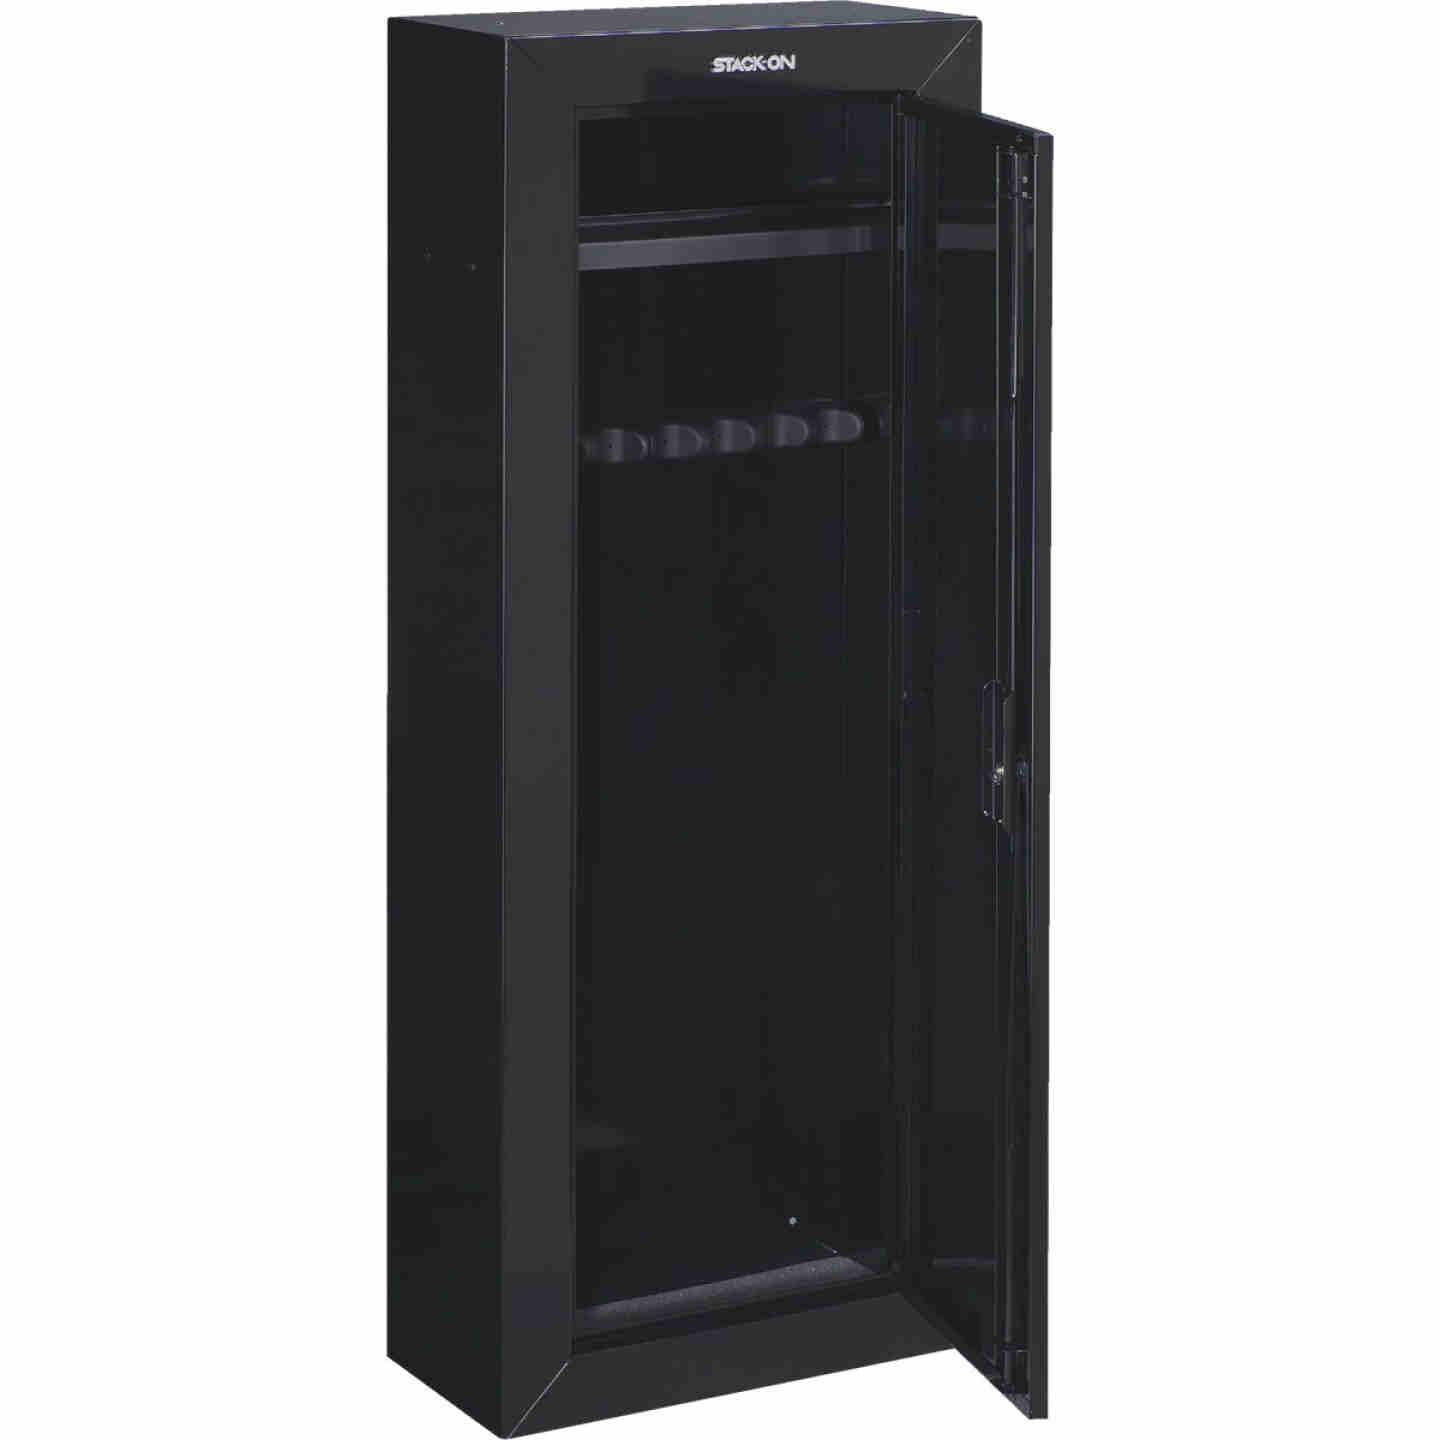 Stack-On 21 In. W. x 55 In. H. x 10 In. D. Heavy-Gauge Steel 8-Gun Lockable Cabinet Image 1